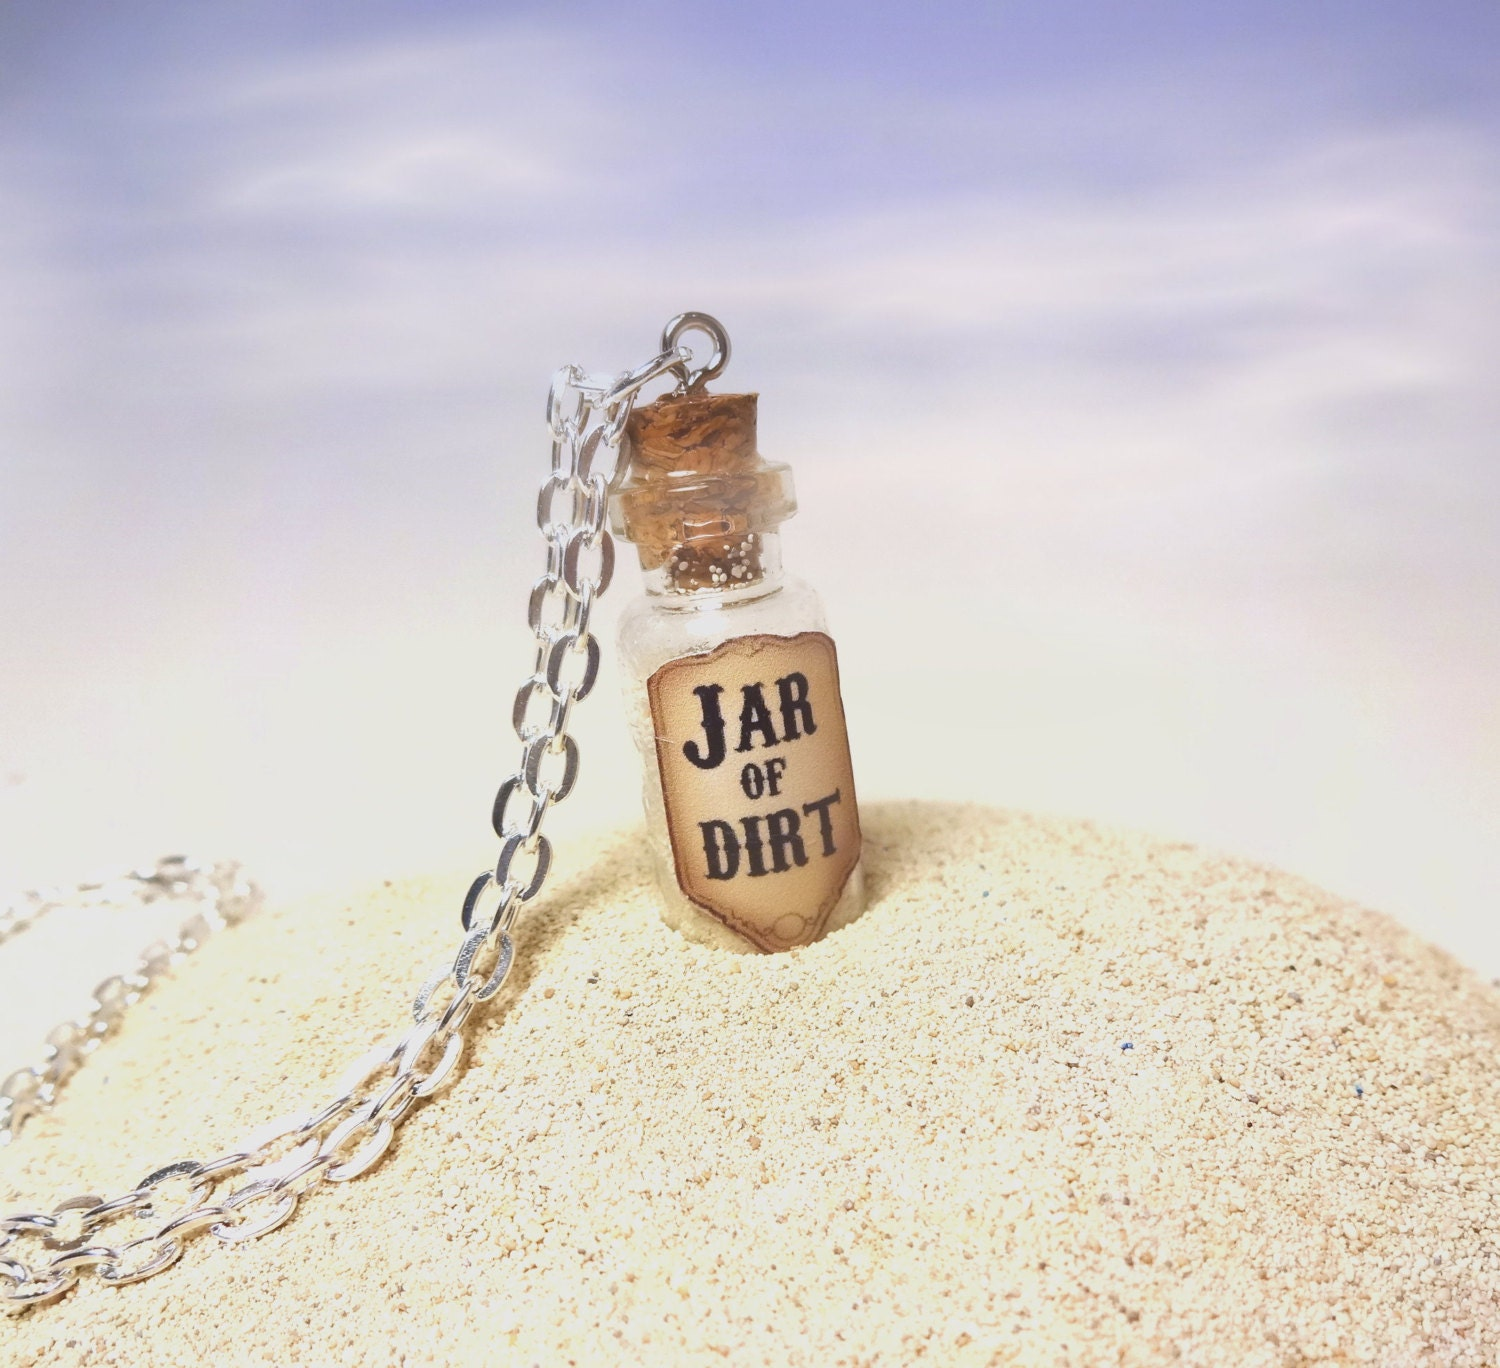 Dirt Bikes And More.jar Jar of Dirt Glass Bottle